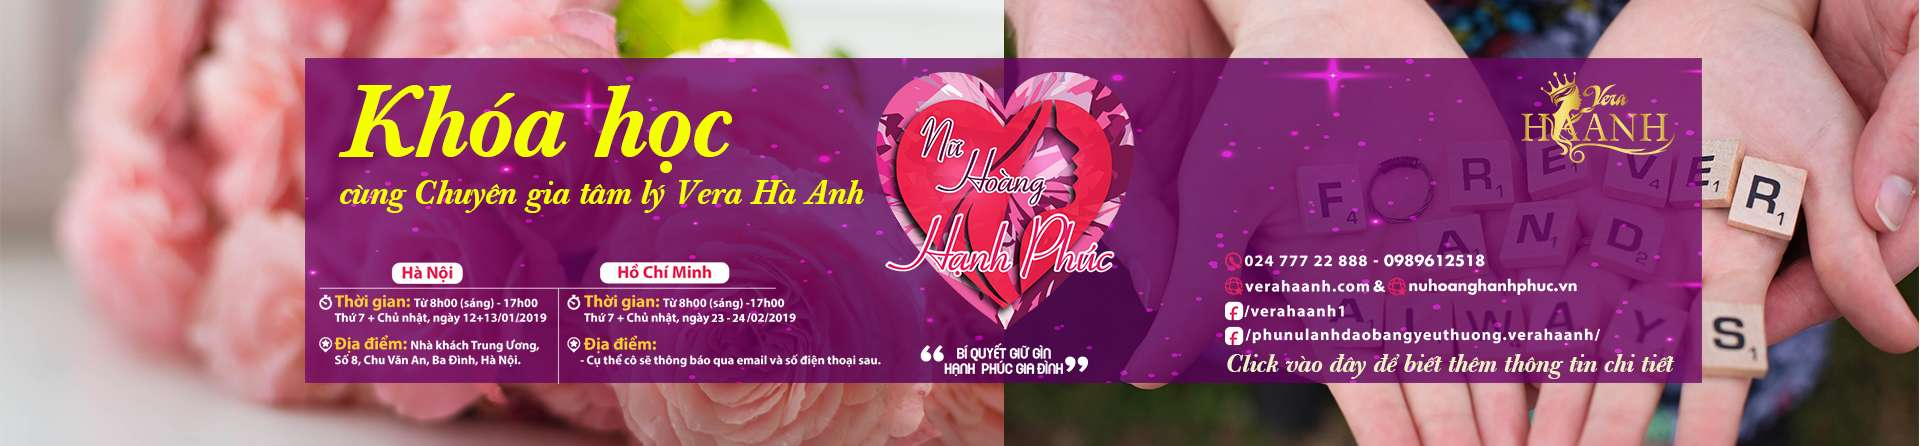 banner website nu hoang hanh phuc - Expert of marriage, love and Vera Ha Anh family